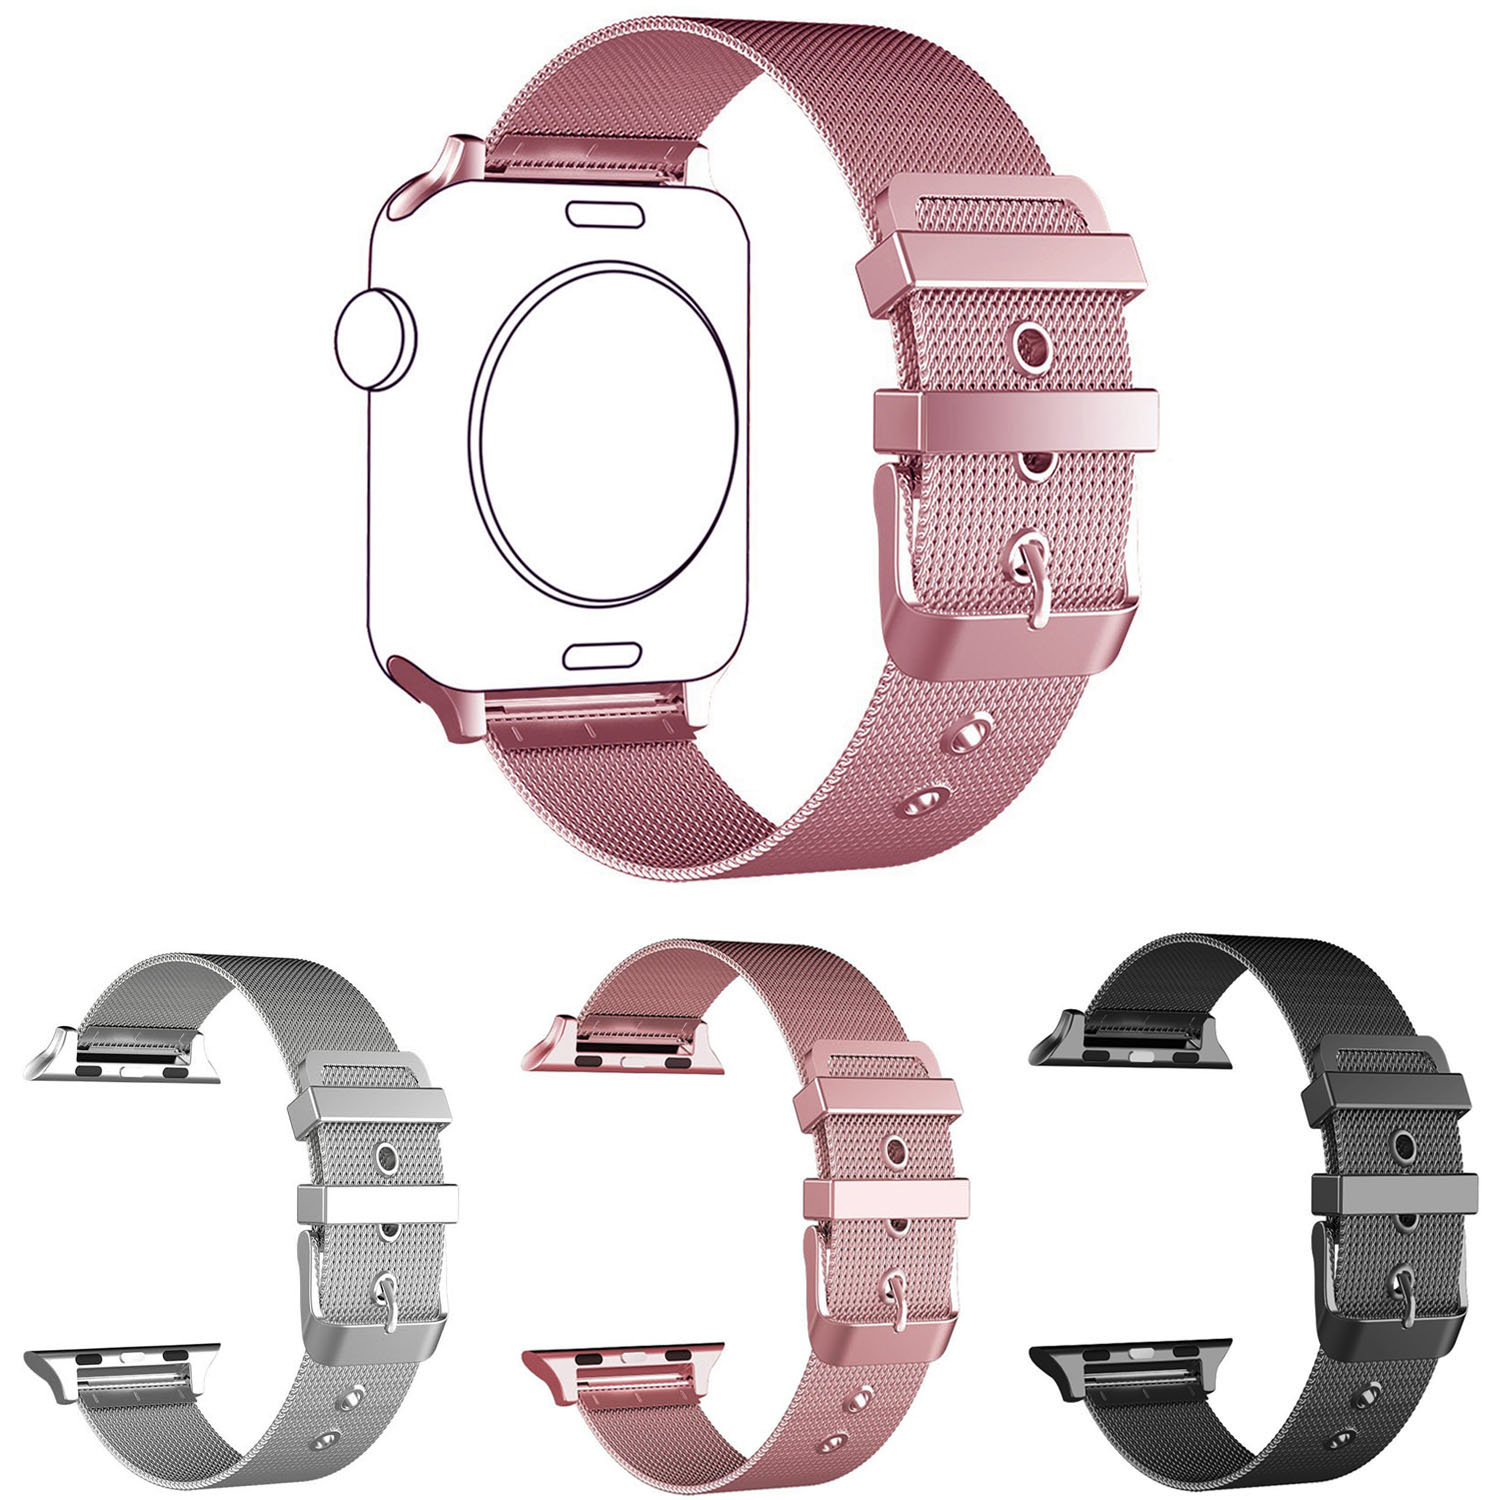 Pink Gold Milanese Bracelet for Apple Watch Band Series 1/2 Meshed Stainless Steel Wrist Strap for iWatch 42mm 38mm Wristband kopeck milanese loop strap for apple watch band 42mm 38mm mesh stainless steel bracelet strap for iwatch serie 1 2 3 wrist band